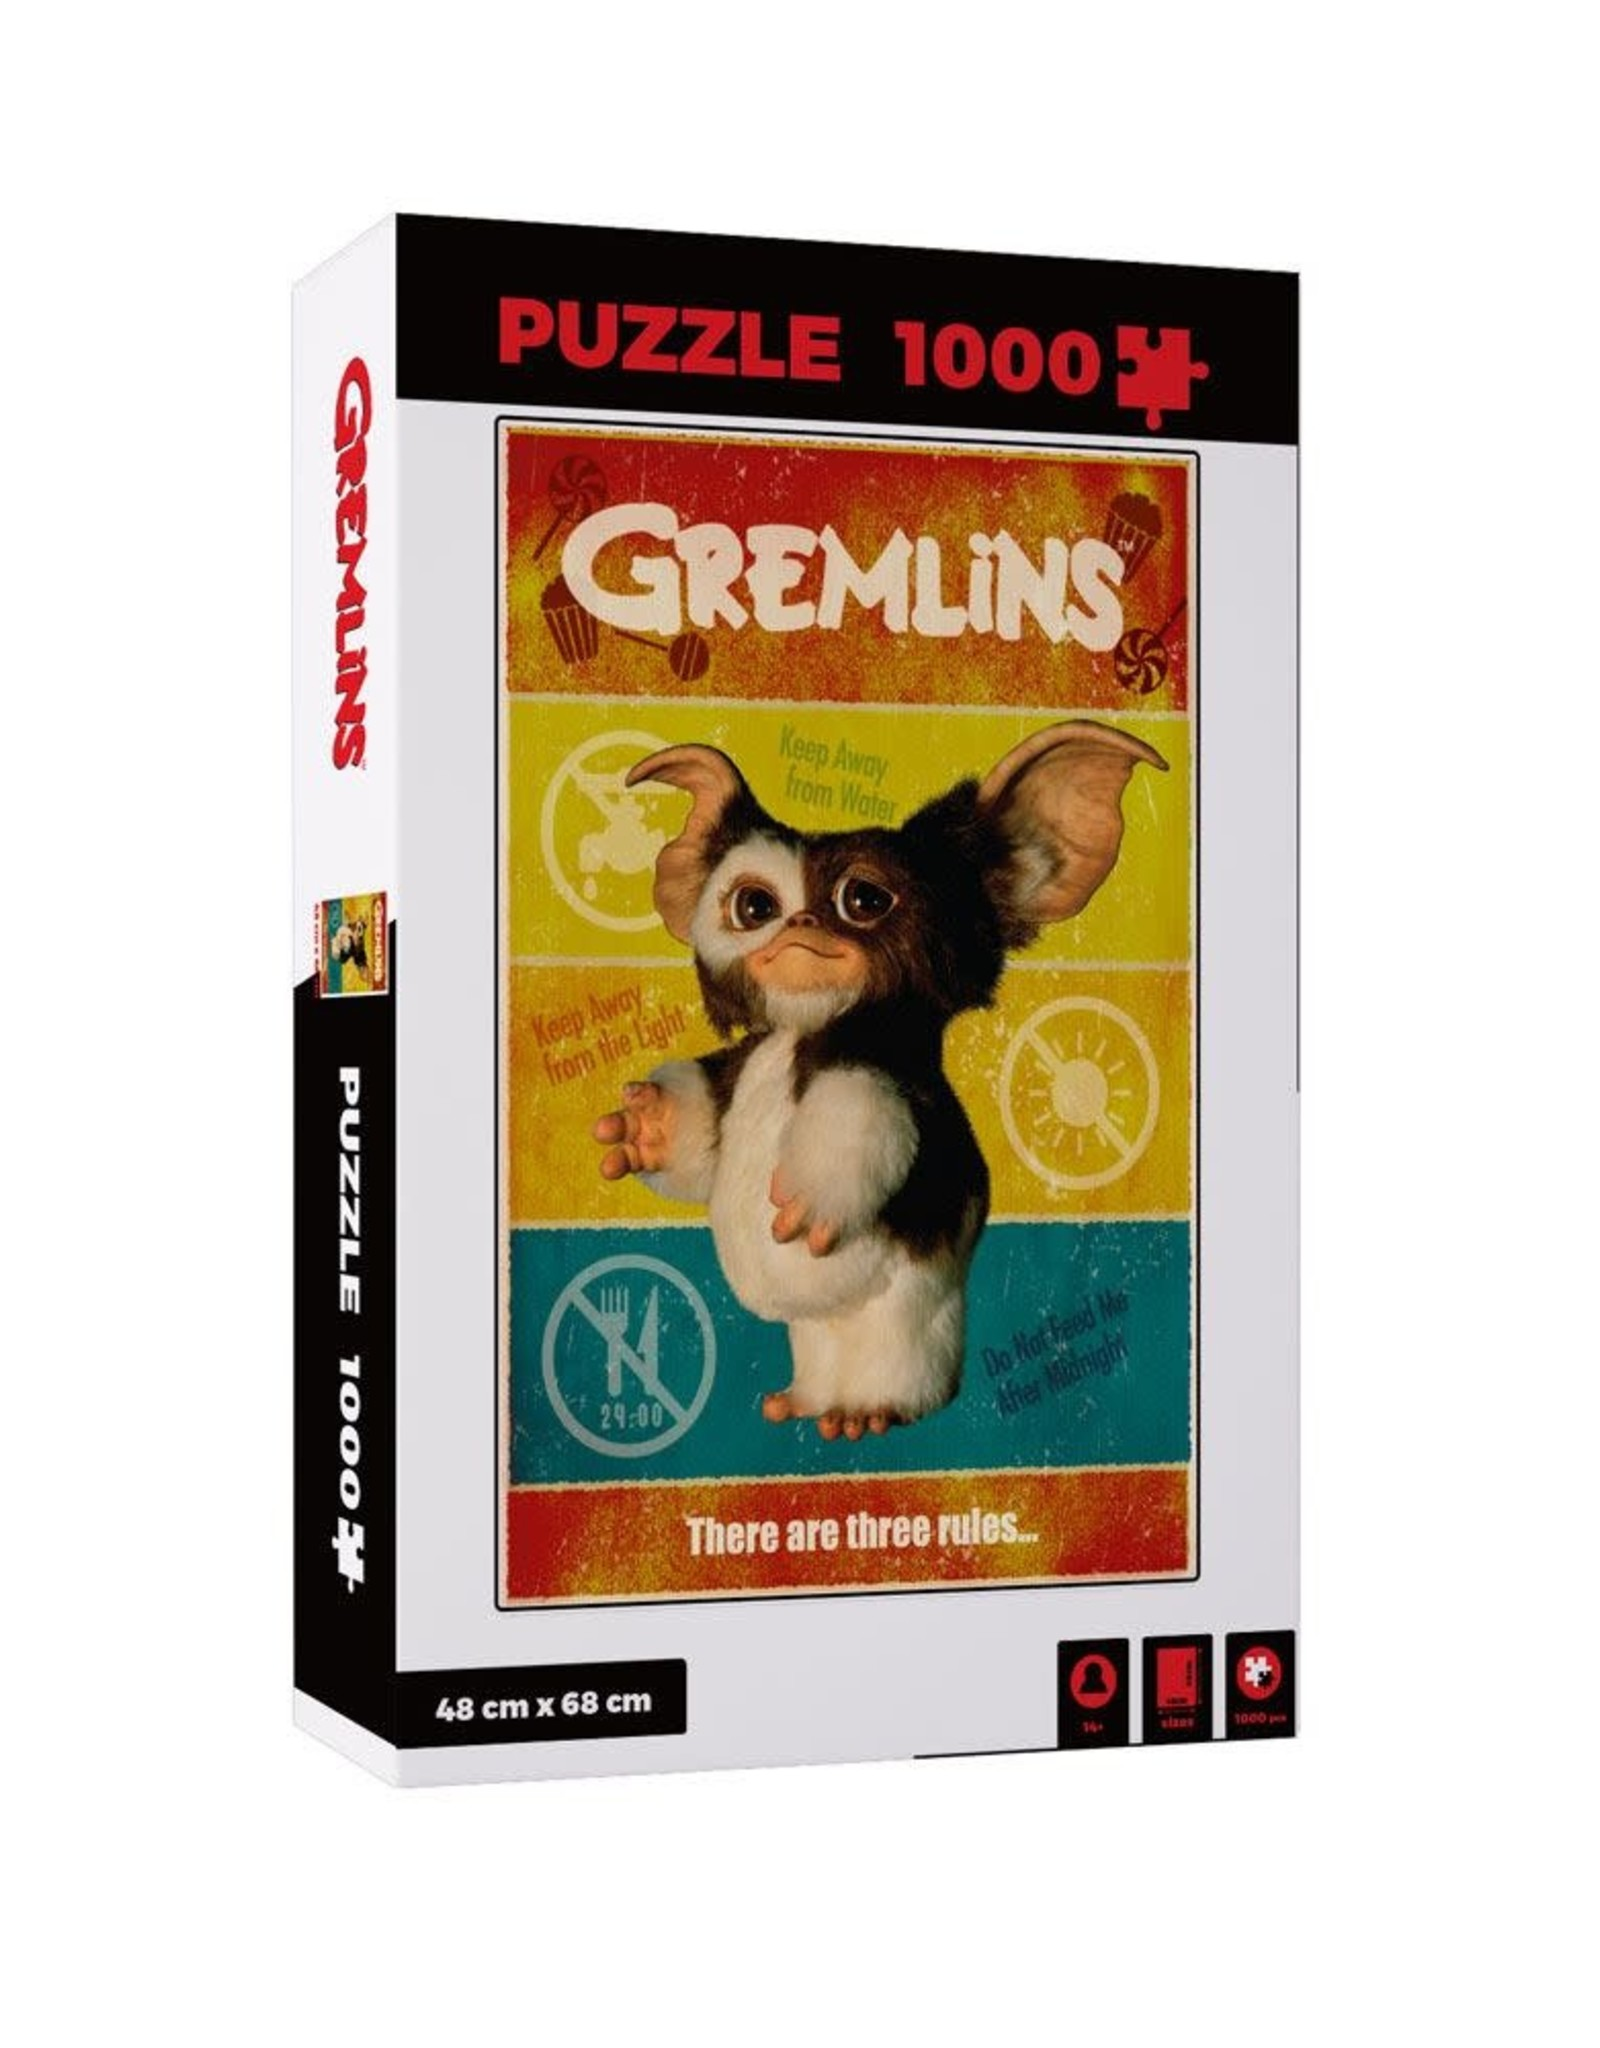 SD Toys GREMLINS Puzzle 1000P -  There Are Three Rules